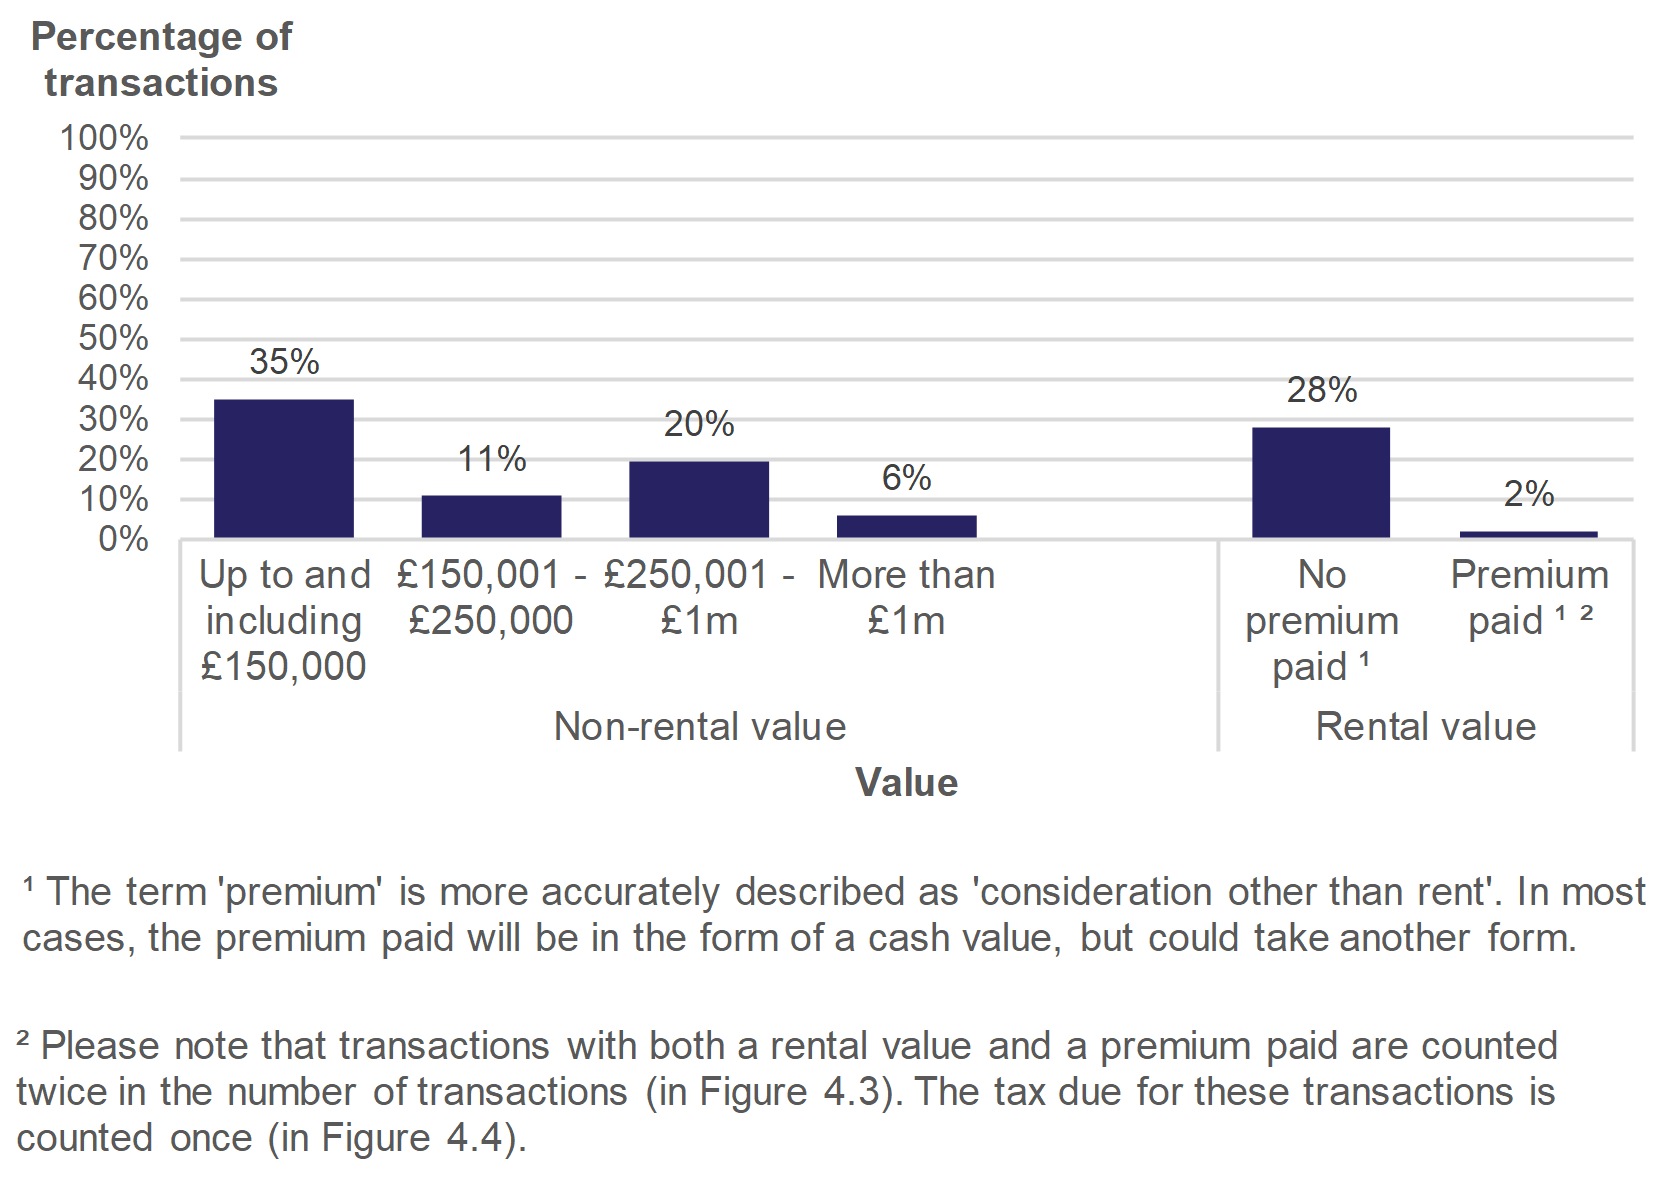 Figure 4.3 shows the number of non-residential transactions by value of the property. Data is presented as the percentage of transactions and relates to transactions effective in July to September 2019.